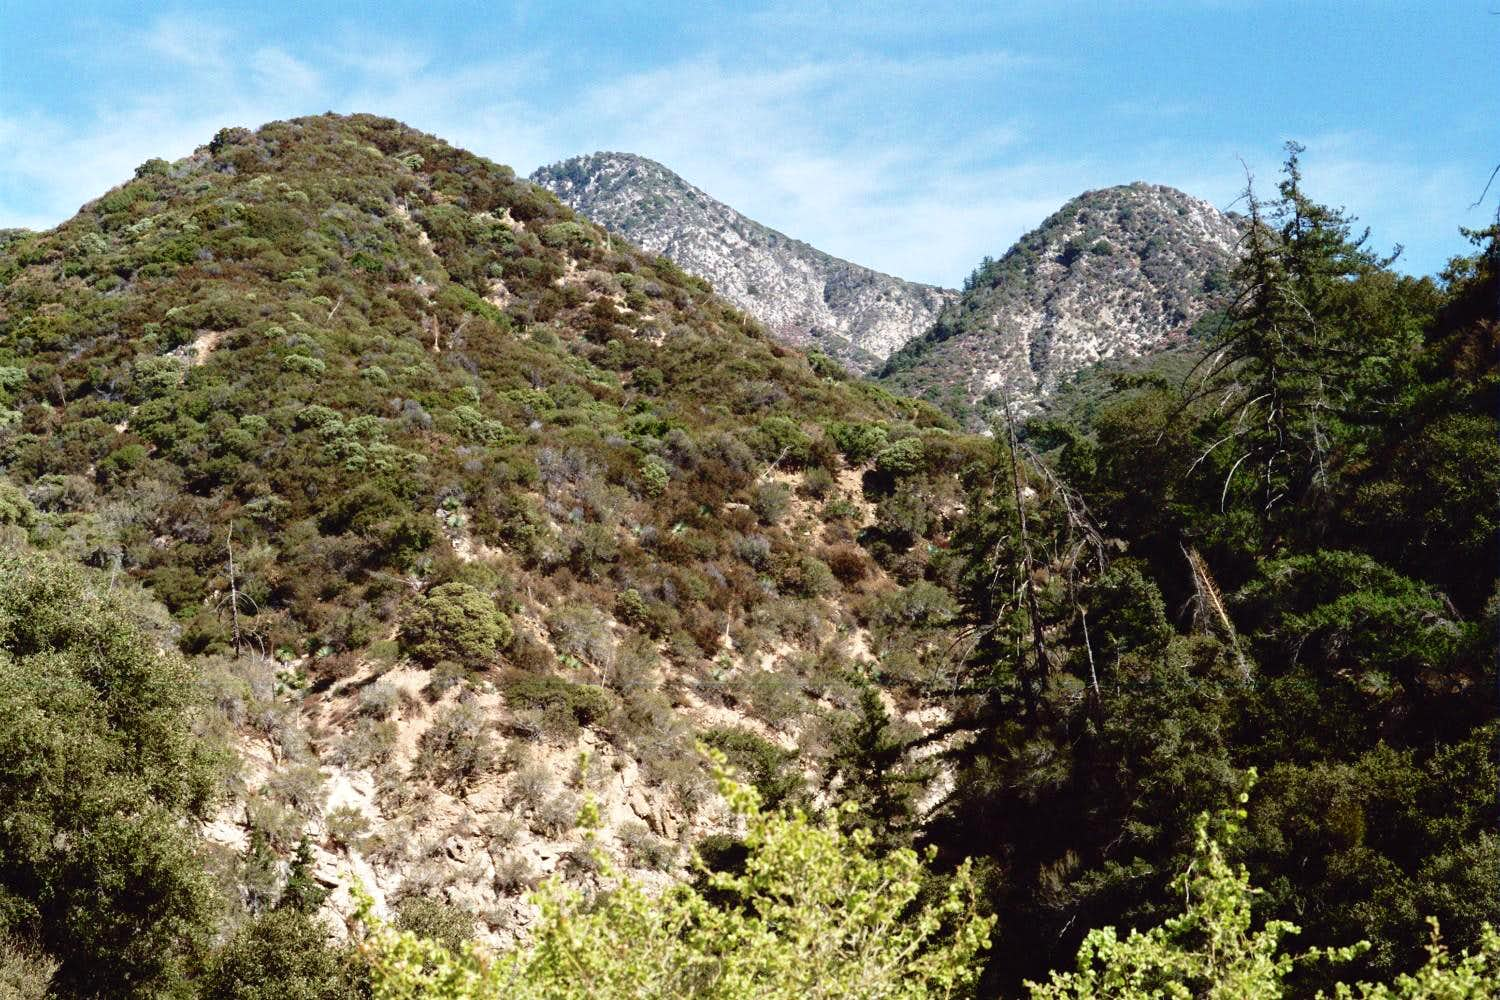 Colby Canyon